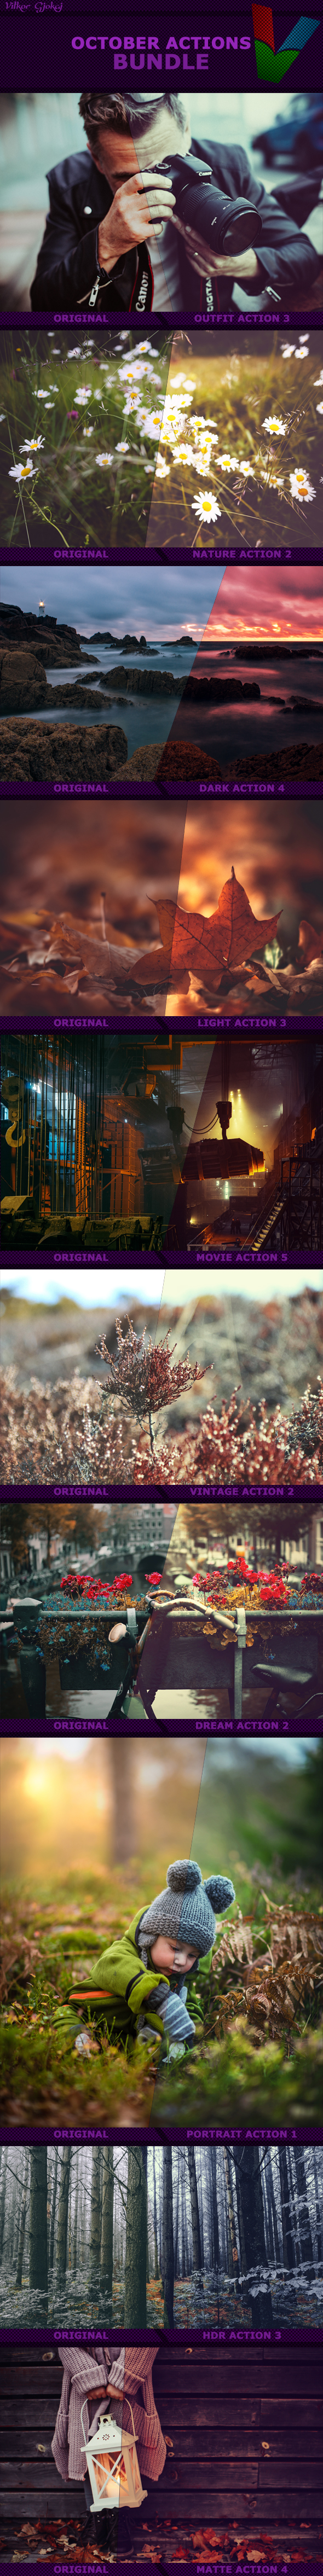 October Photoshop Actions Bundle - Photo Effects Actions